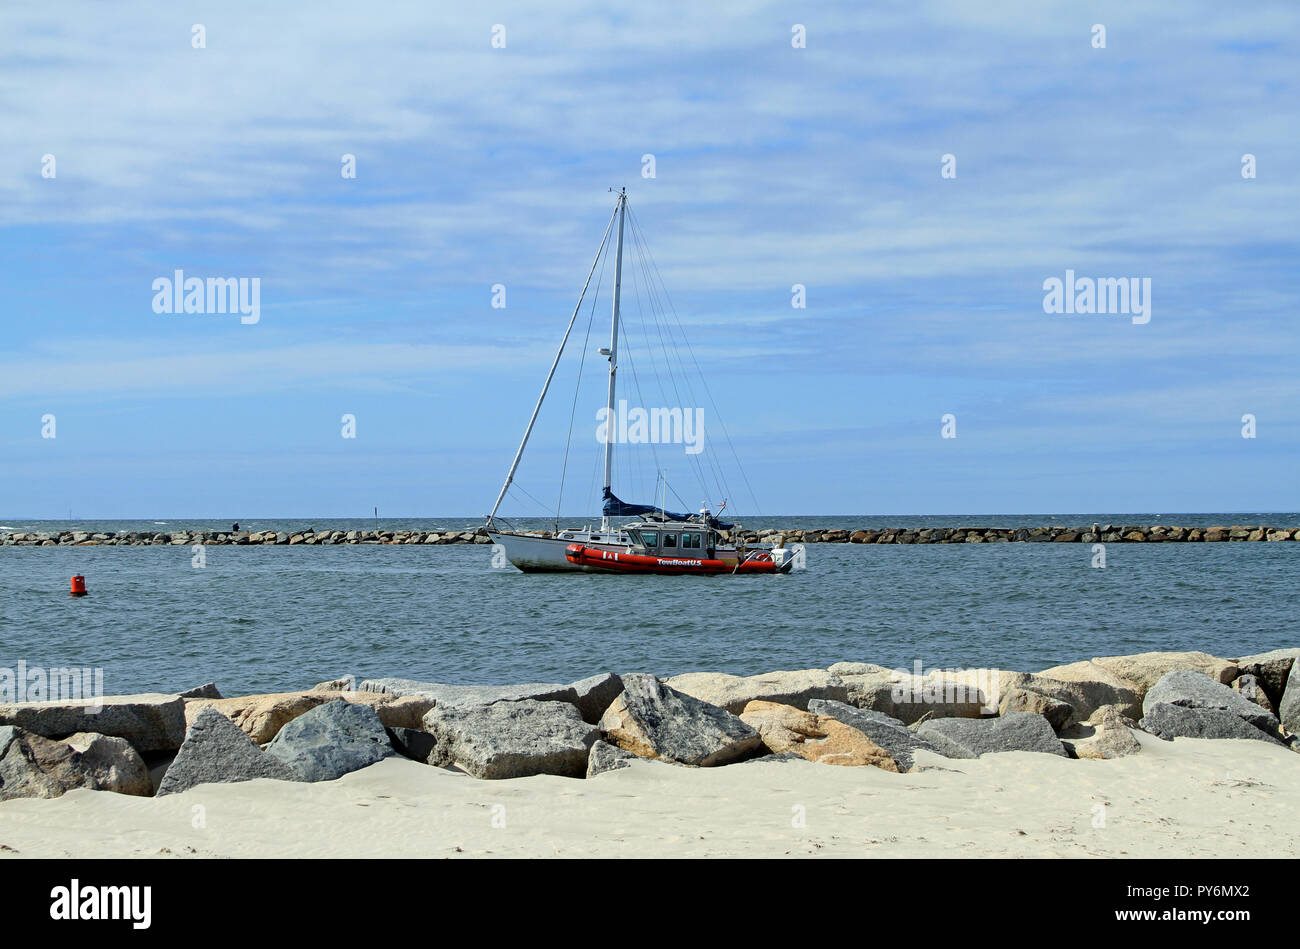 A disabled sailboat being pulled by a TowBoat U.S. through the jetty marking the entrance to Sesuit Harbor on Cape Cod in East Dennis, Massachusetts Stock Photo